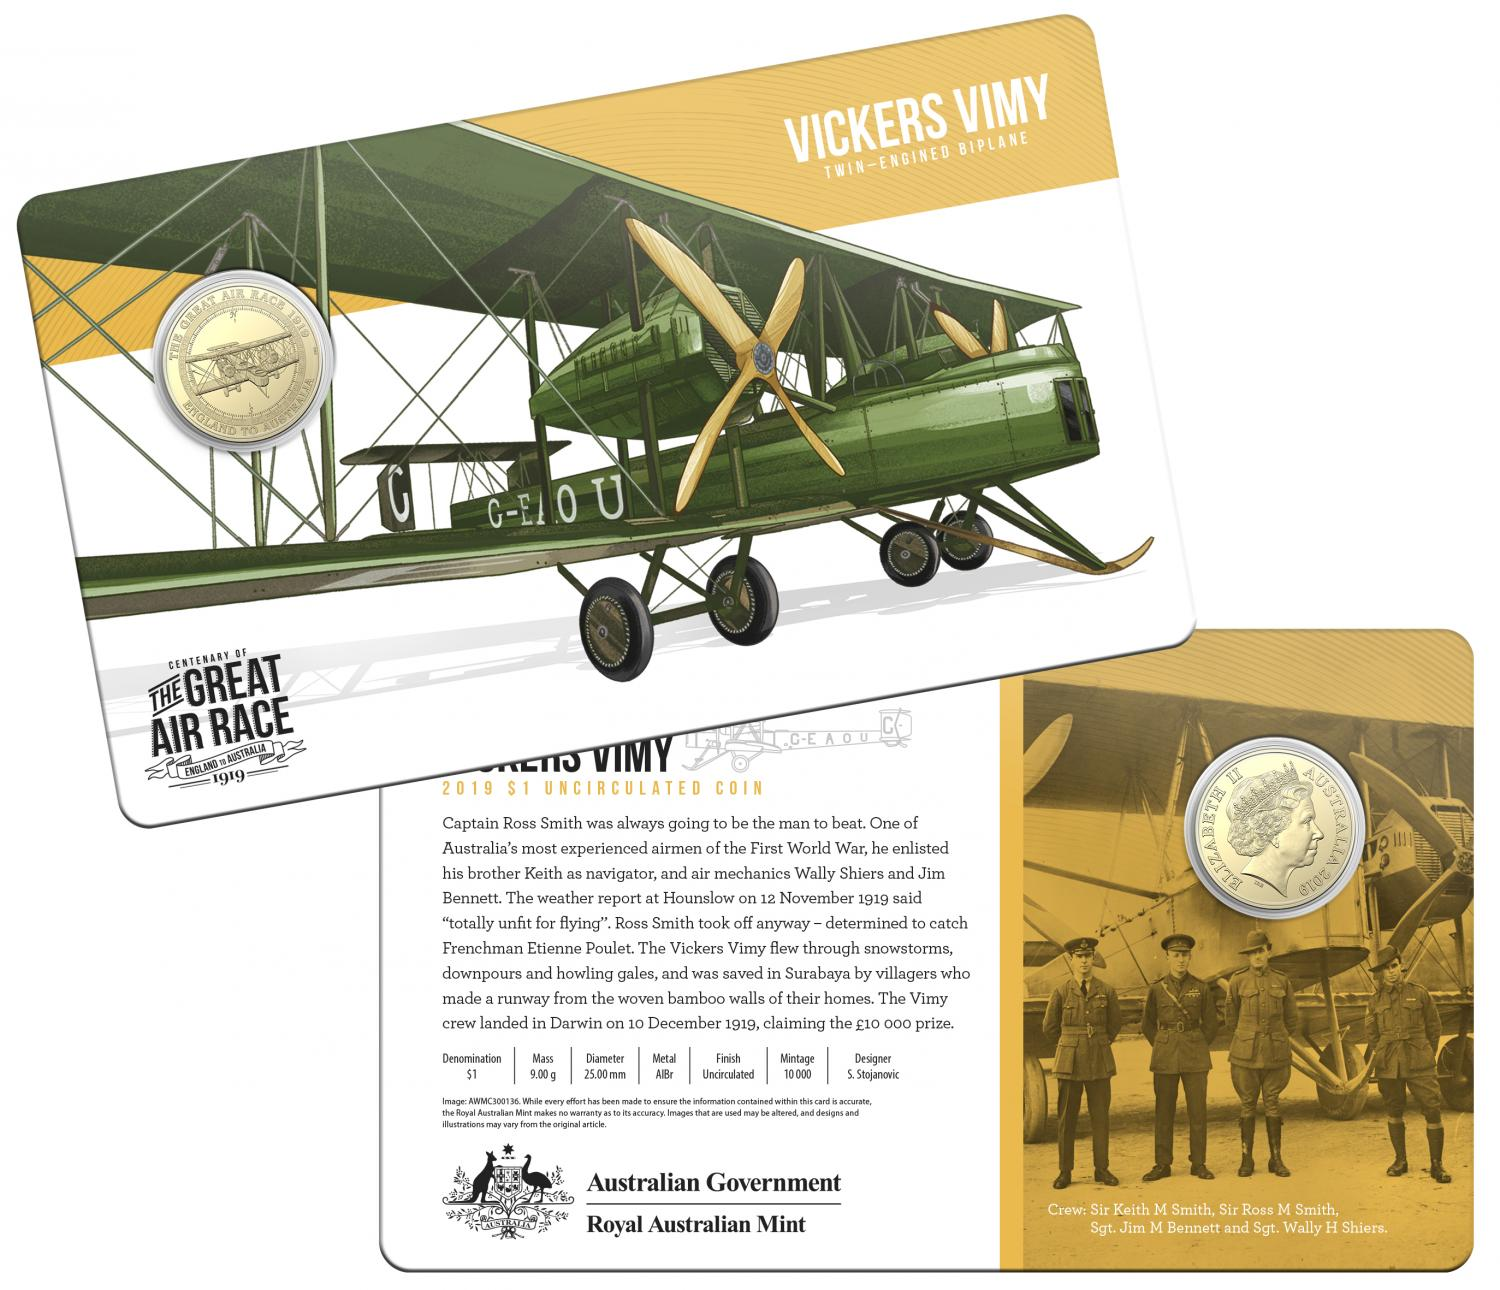 Thumbnail for 2019 Centenary off the Great Air Race Uncirculated $1.00 - Vickers Vimy